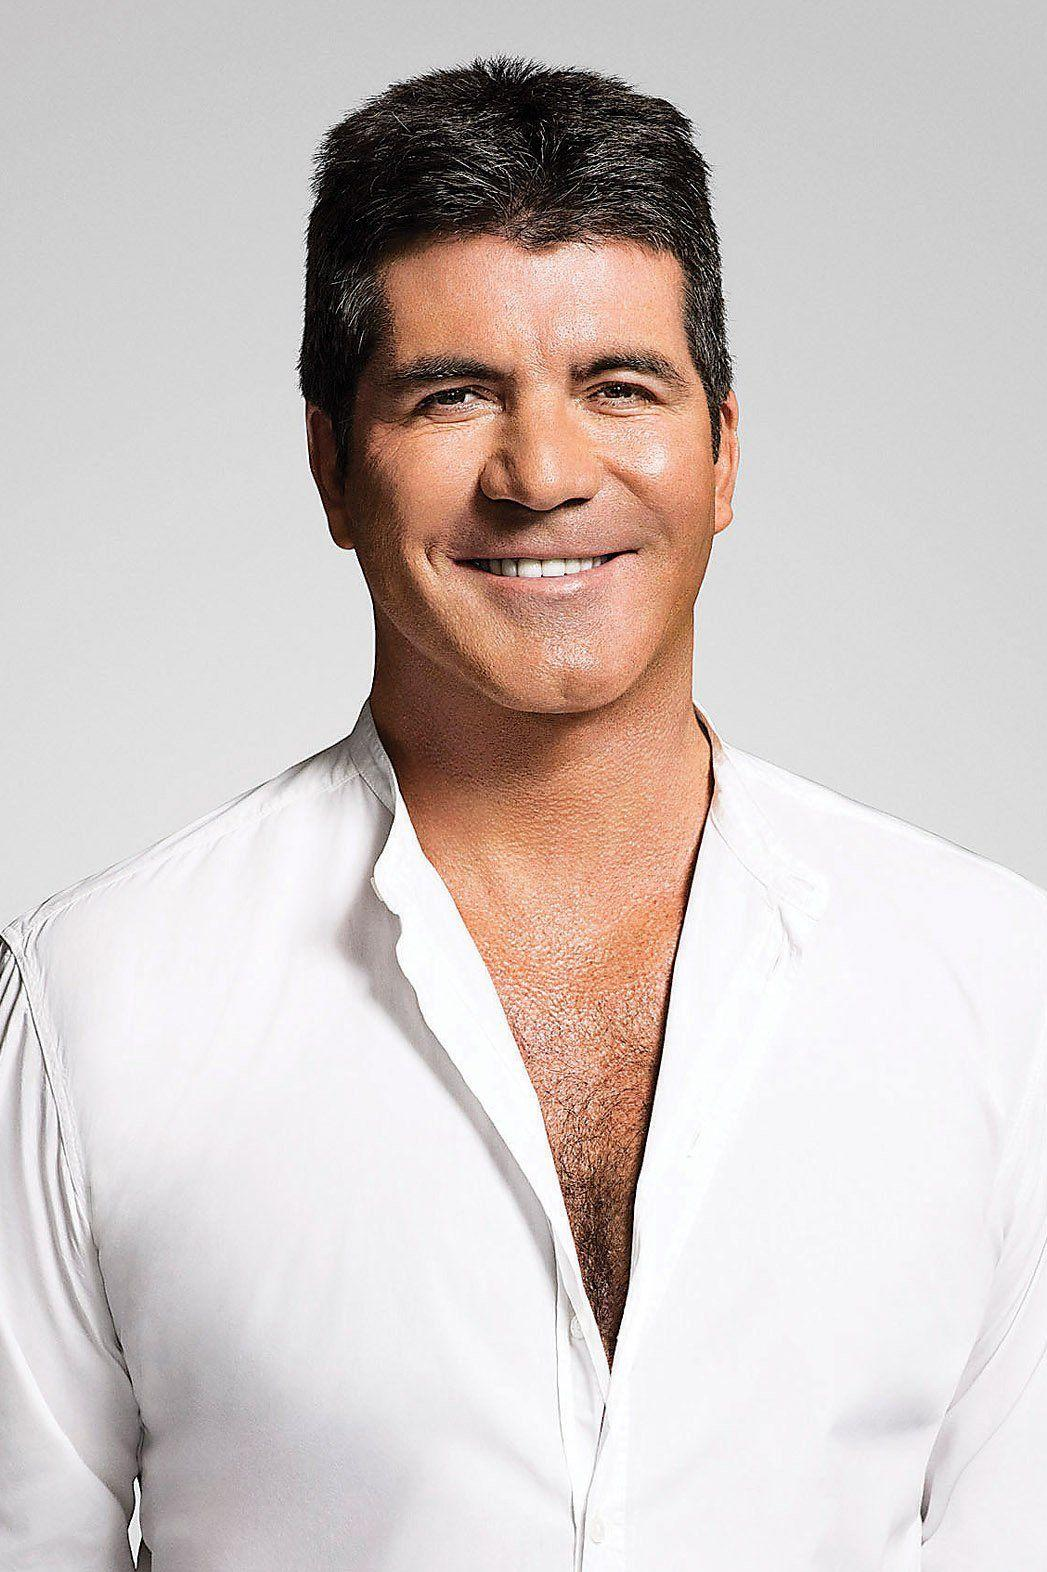 More Beautiful Simon Cowell Wallpapers